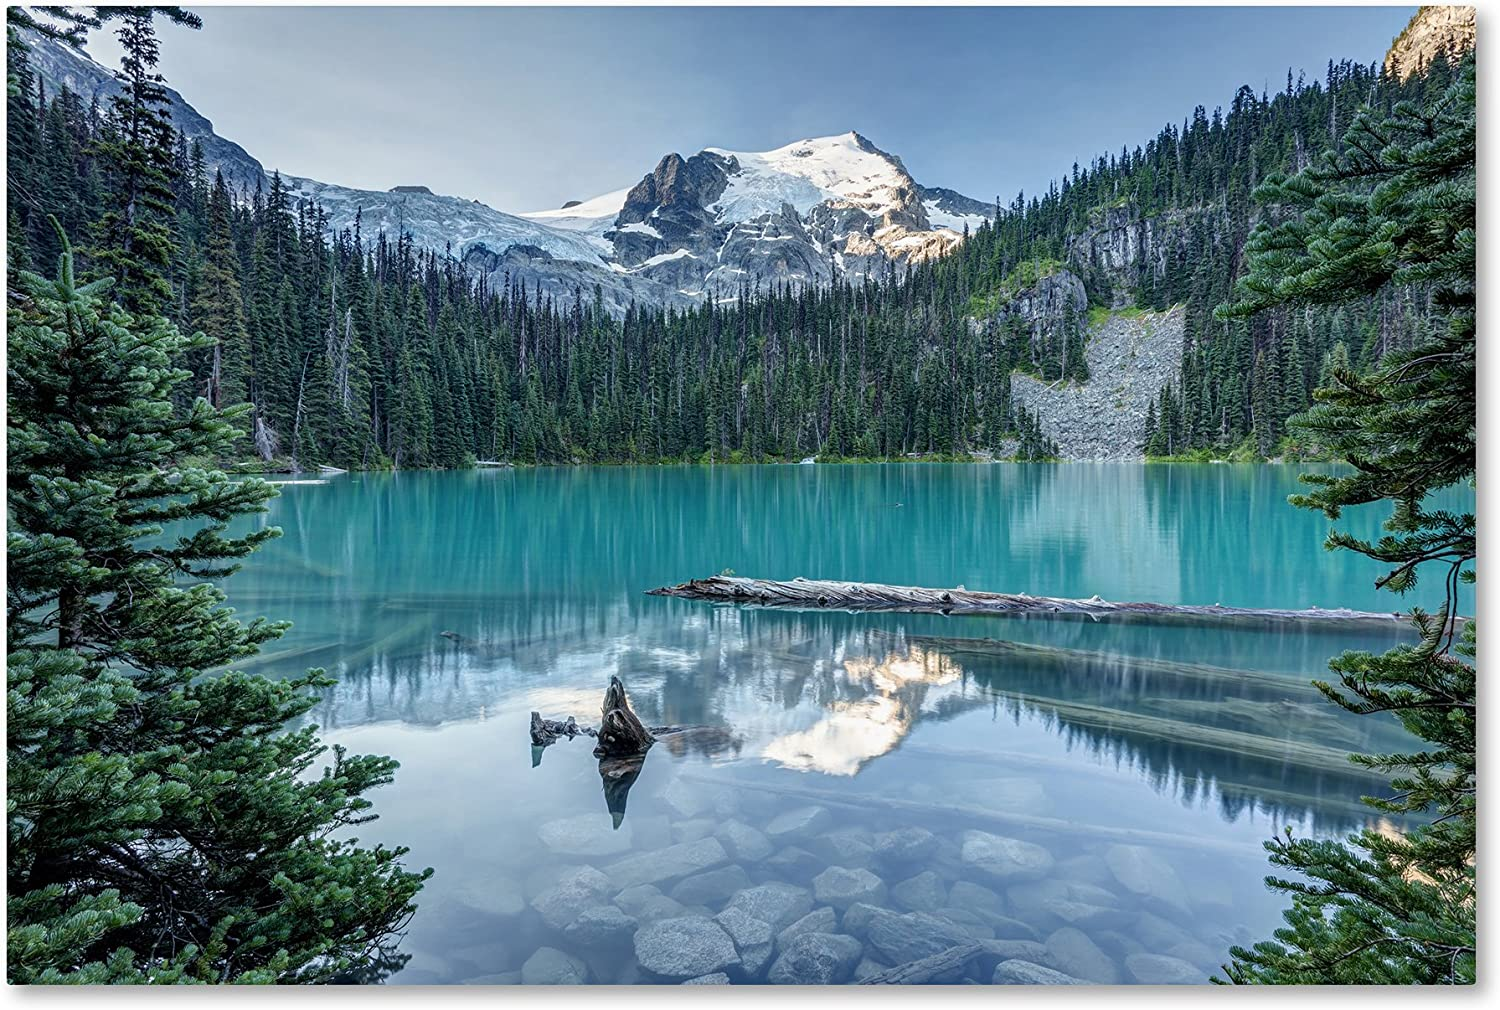 Amazon Com Natural Beautiful British Columbia By Pierre Leclerc 22x32 Inch Canvas Wall Art Posters Prints